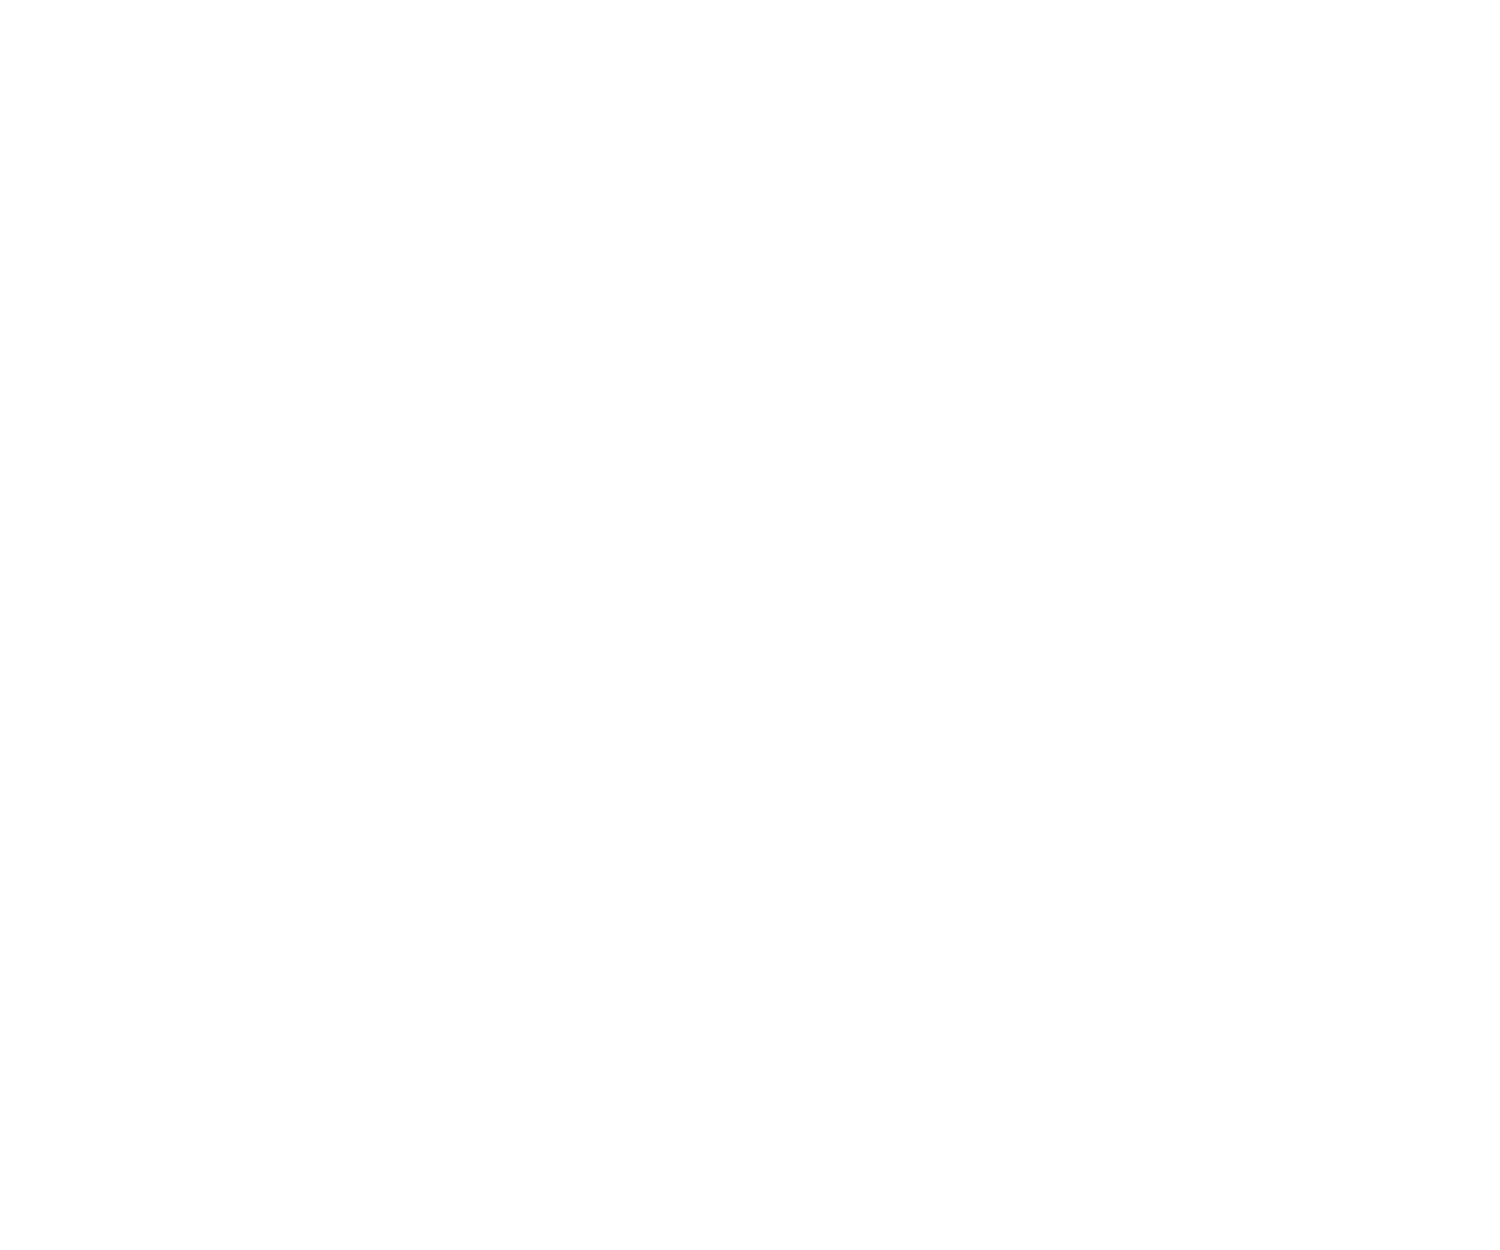 The Bienville Legacy